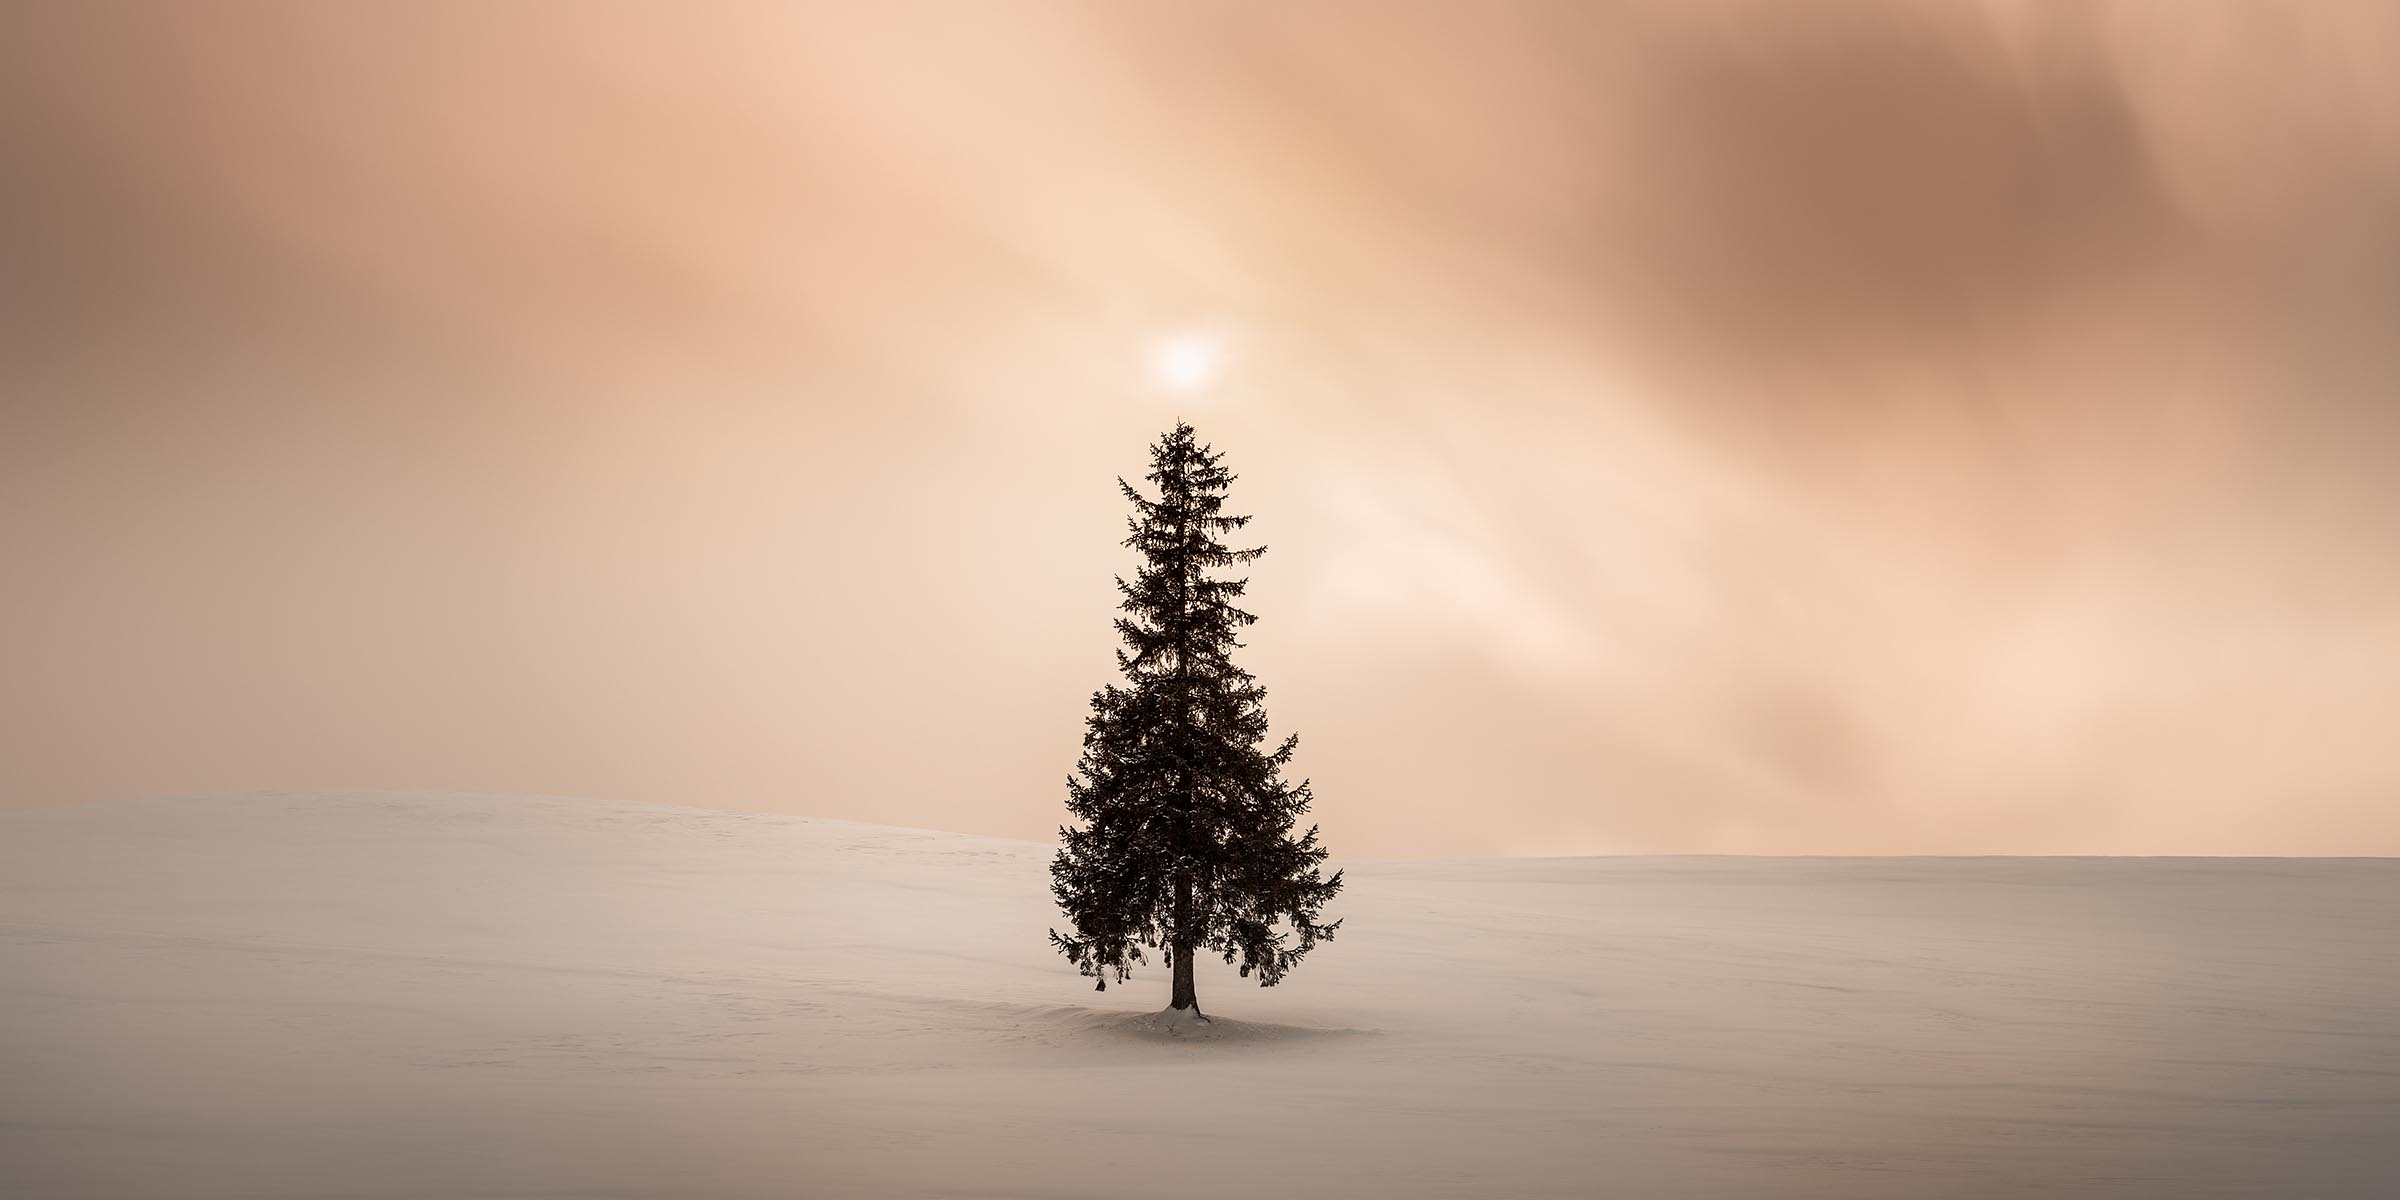 Photograph of Christmas Tree in Biei, Japan by Brent Goldman Photography